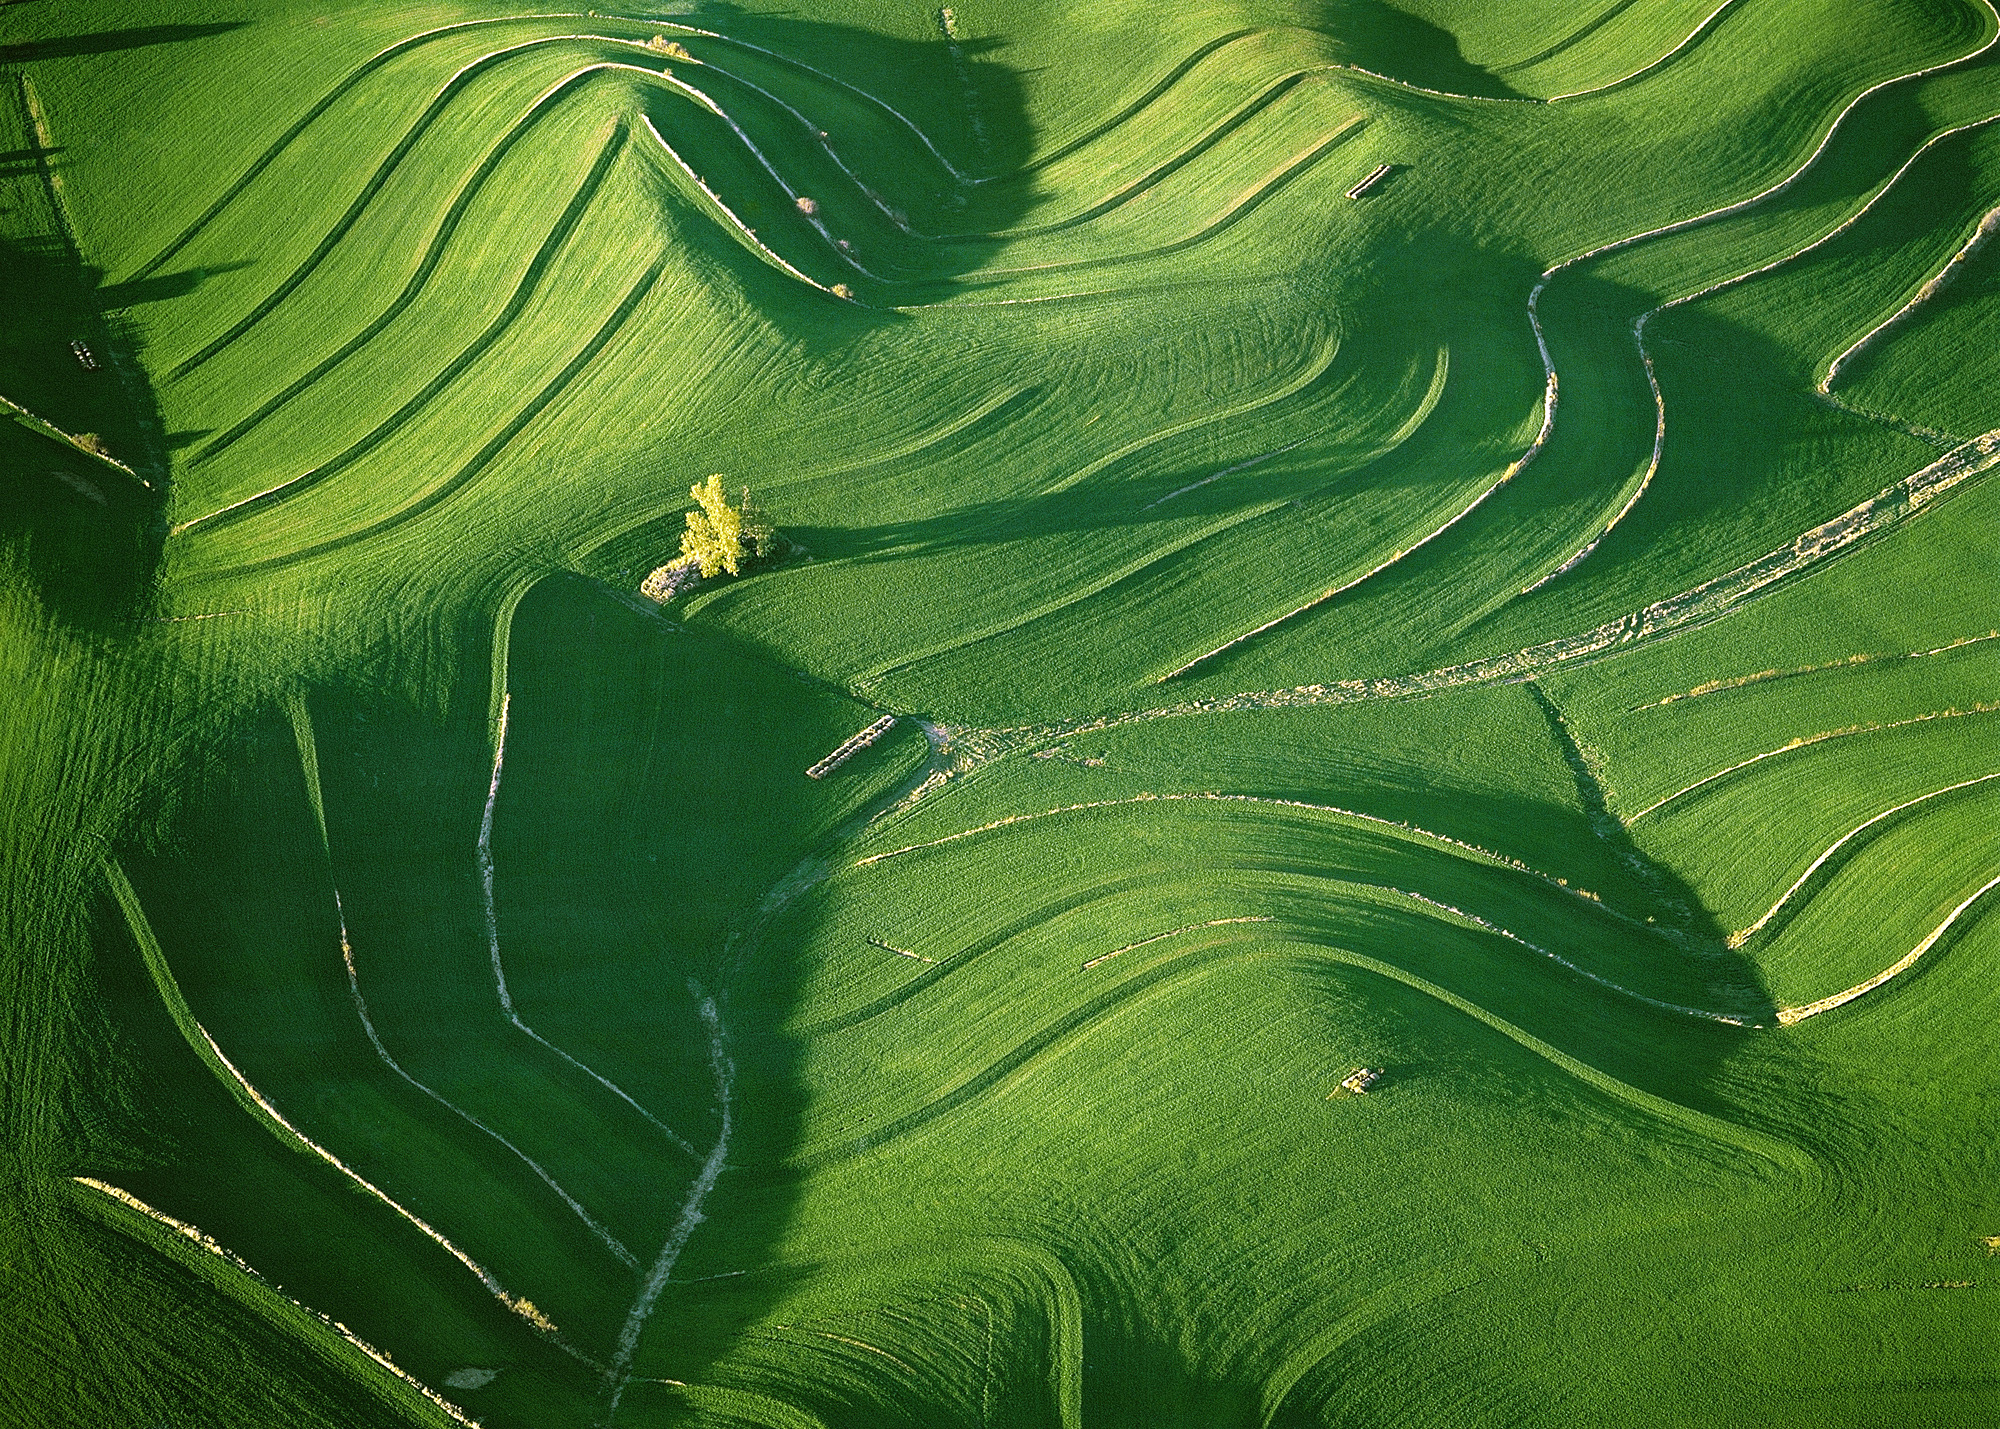 Undulating Hills - near Wahoo, Nebraska, USA 2006    [004-0012].jpg